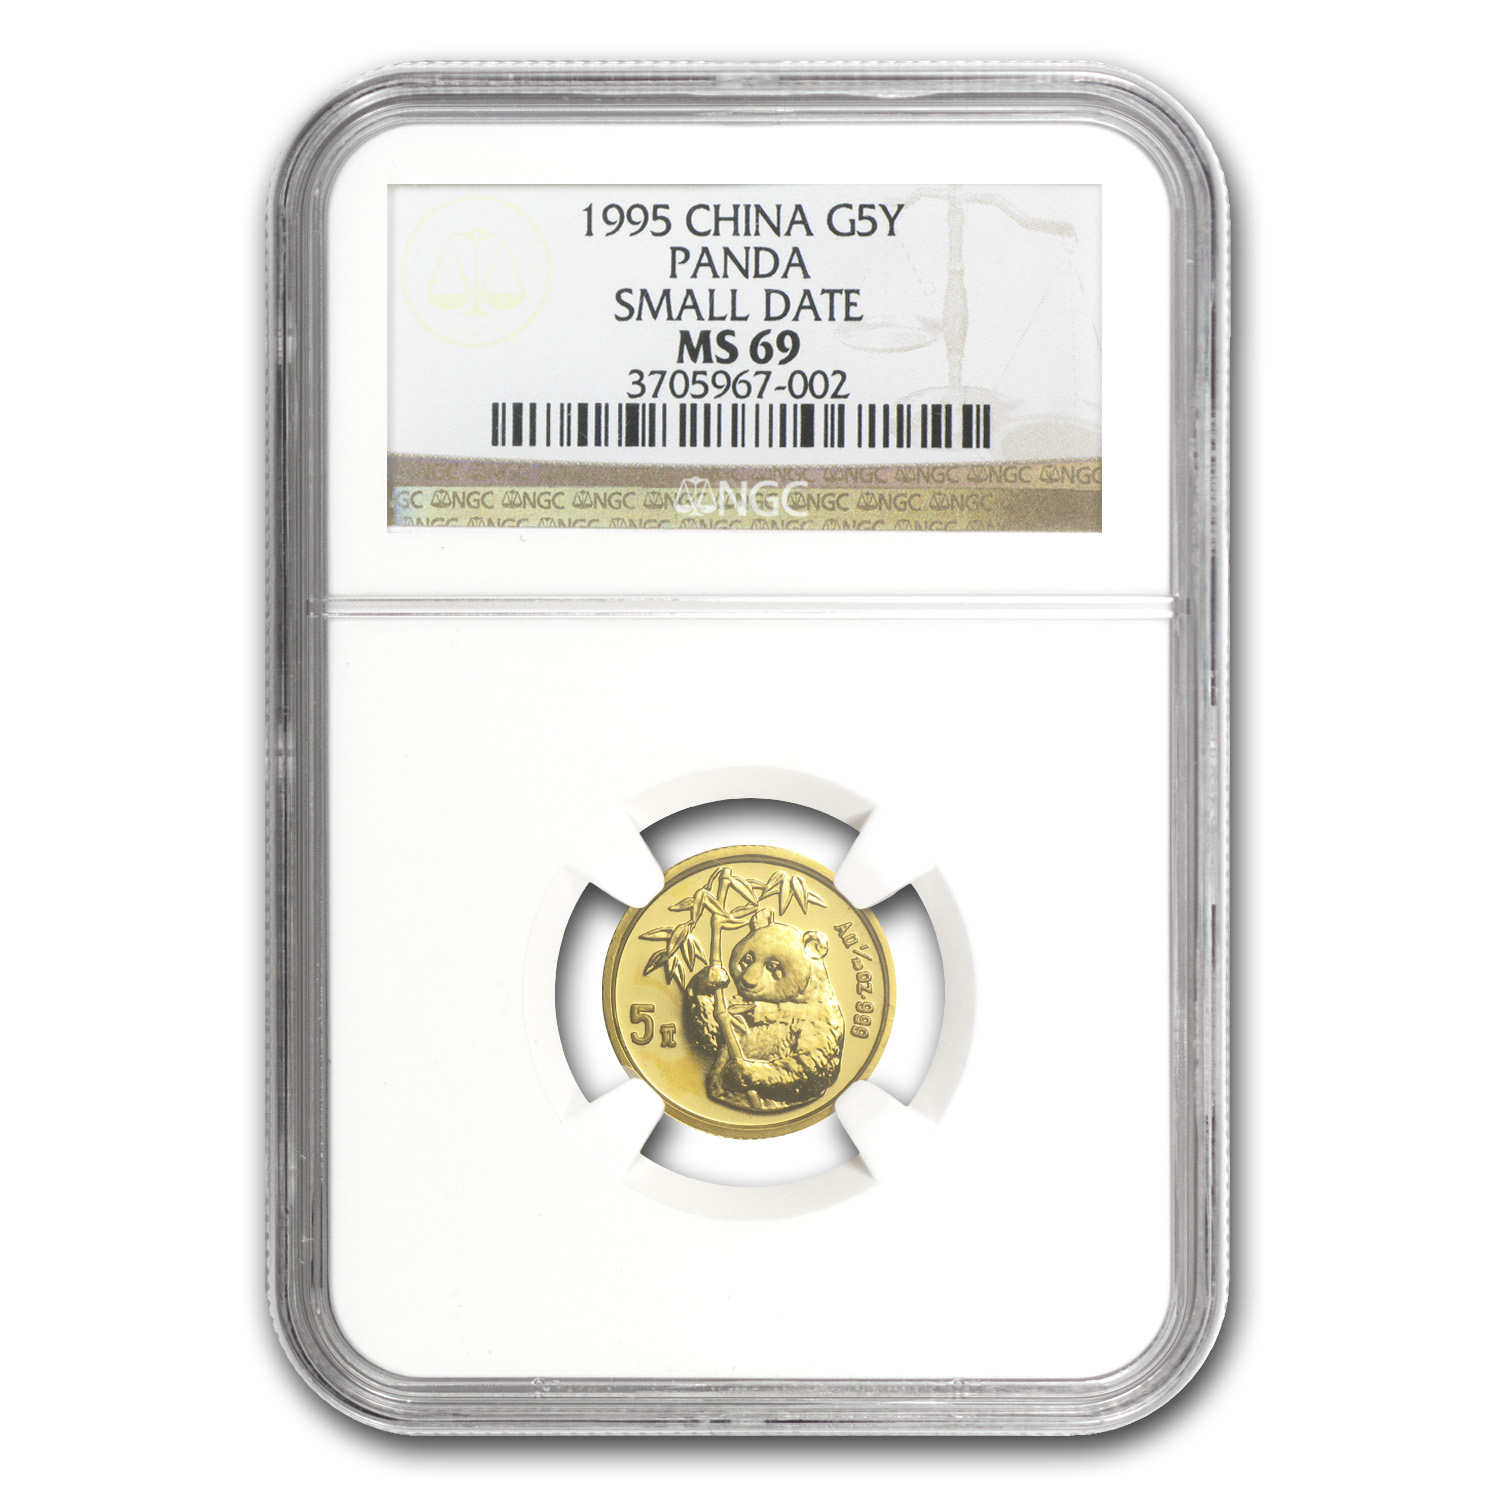 1995 China 1/20 oz Gold Panda Small Date MS-69 NGC